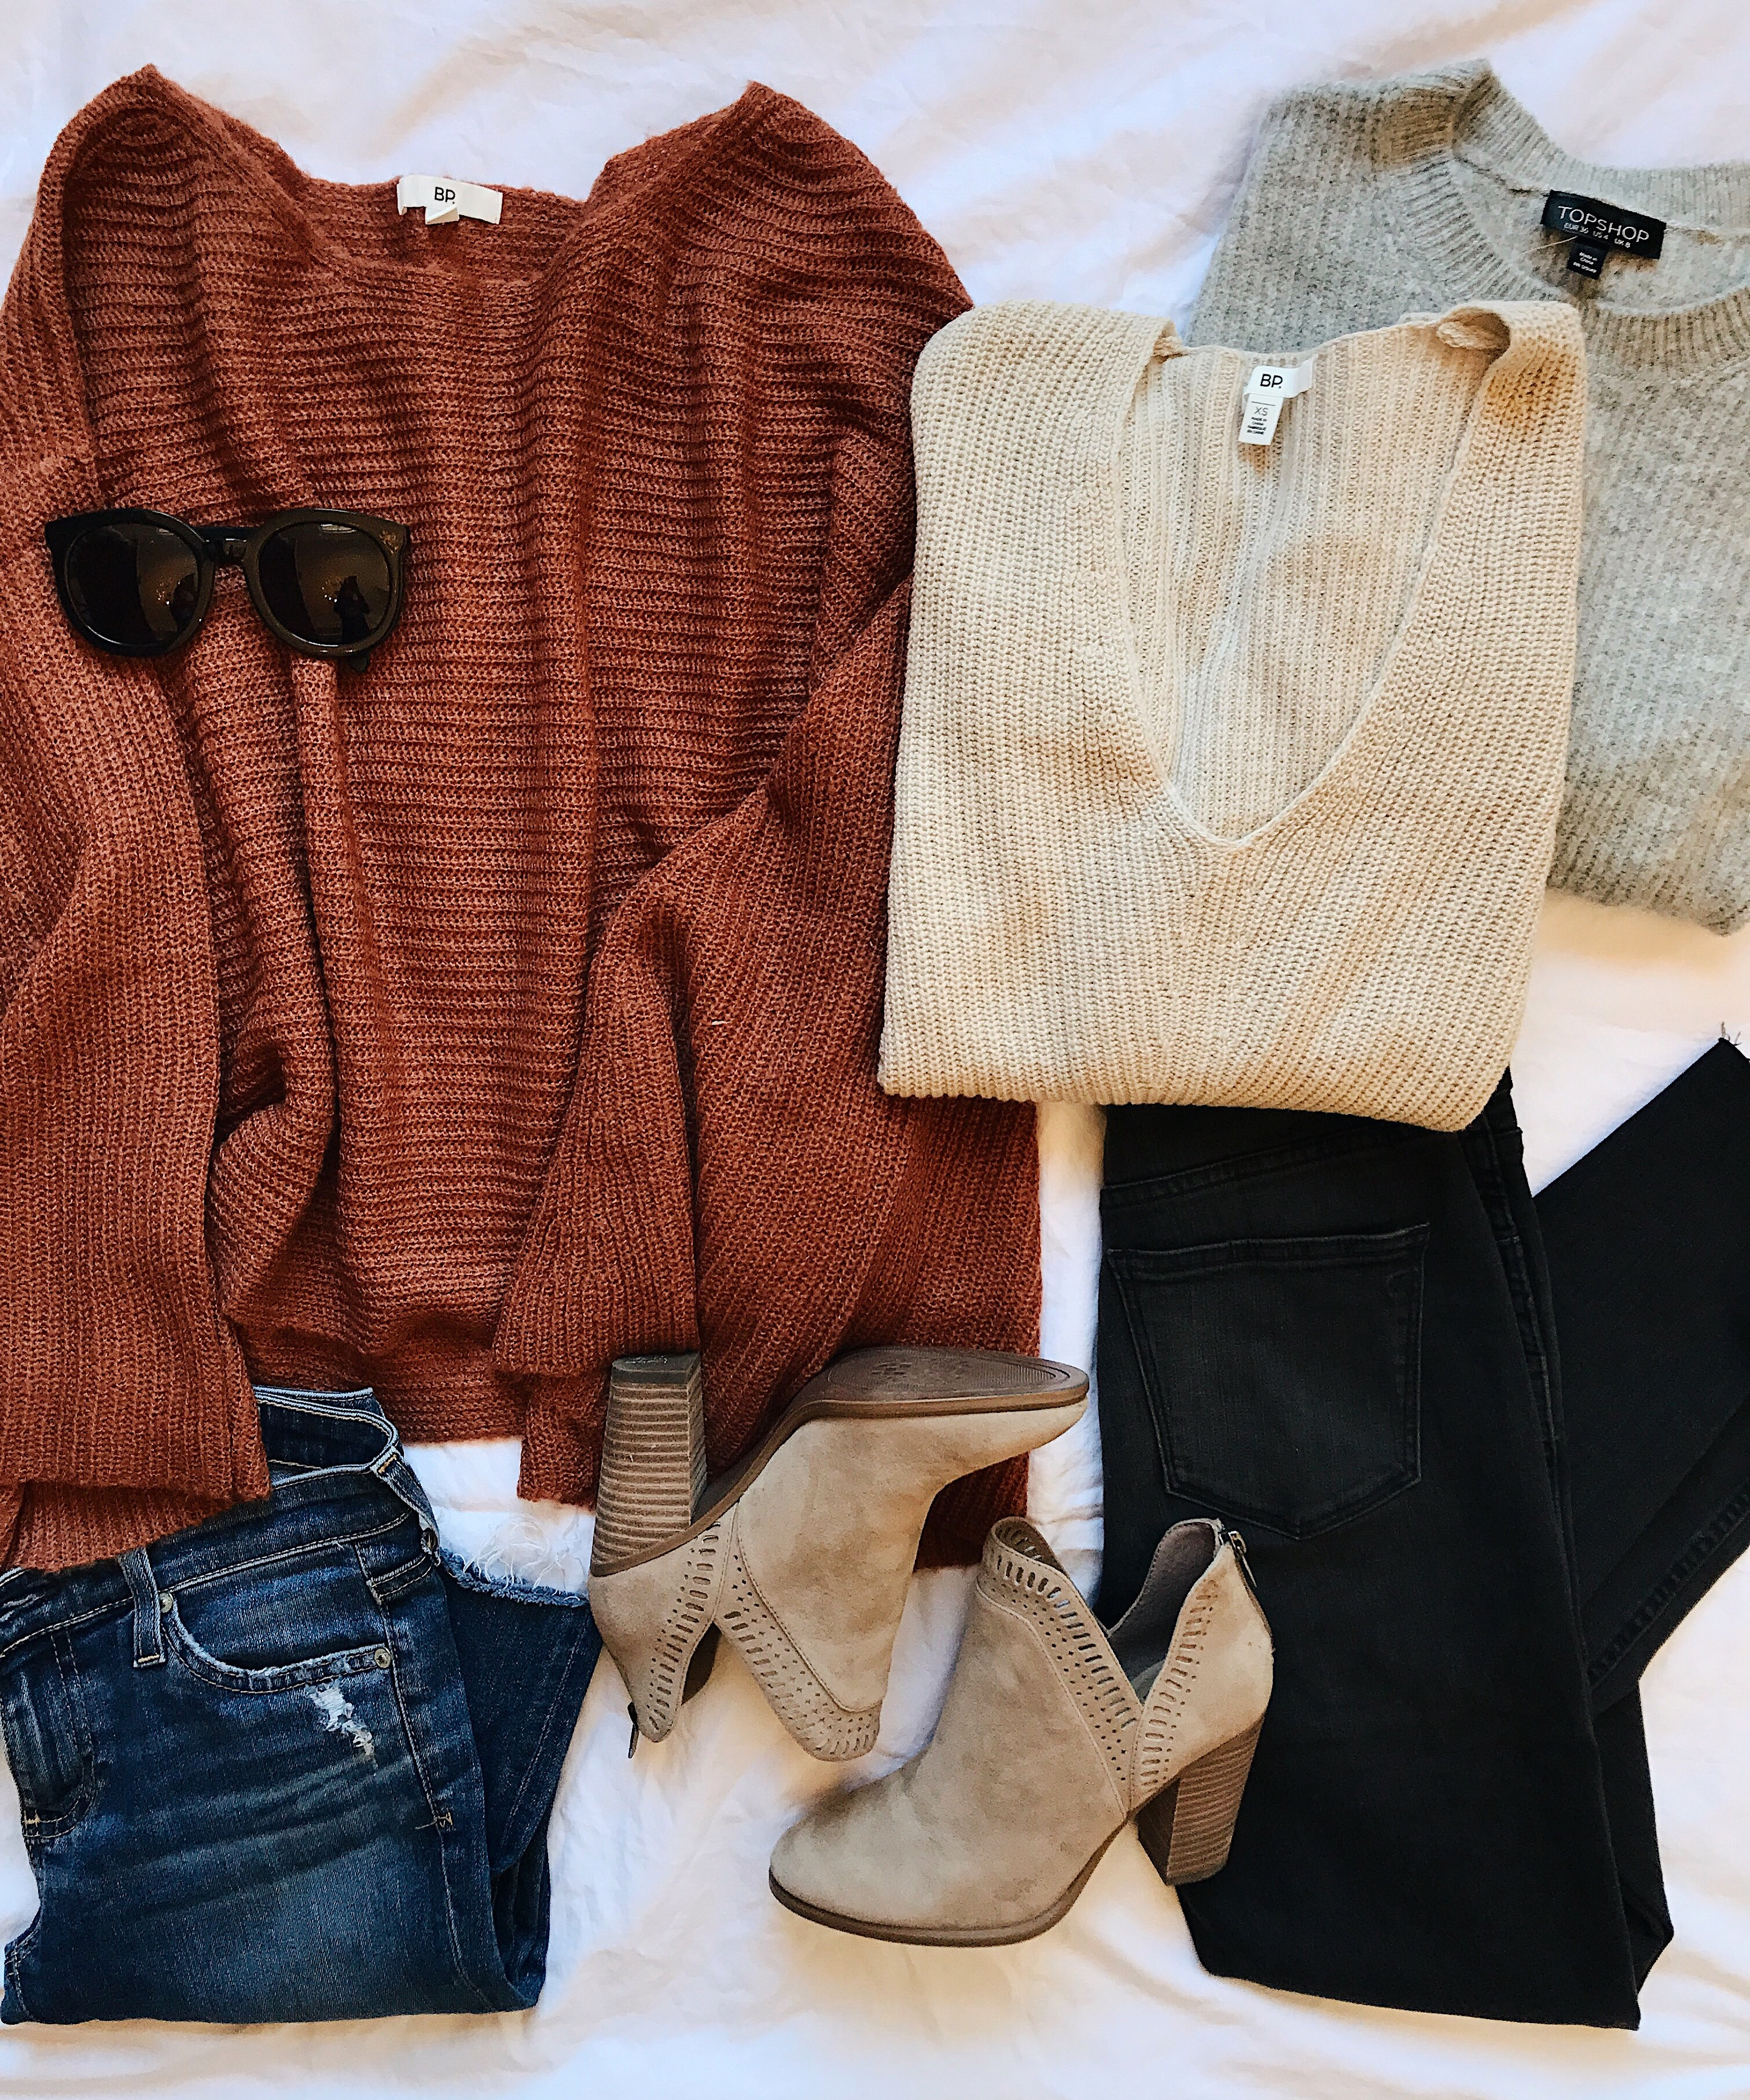 Style blogger Daryl-Ann Denner shares a round-up of fall sweaters including pullovers, cardigans, and other on-trend sweaters for fall 2017